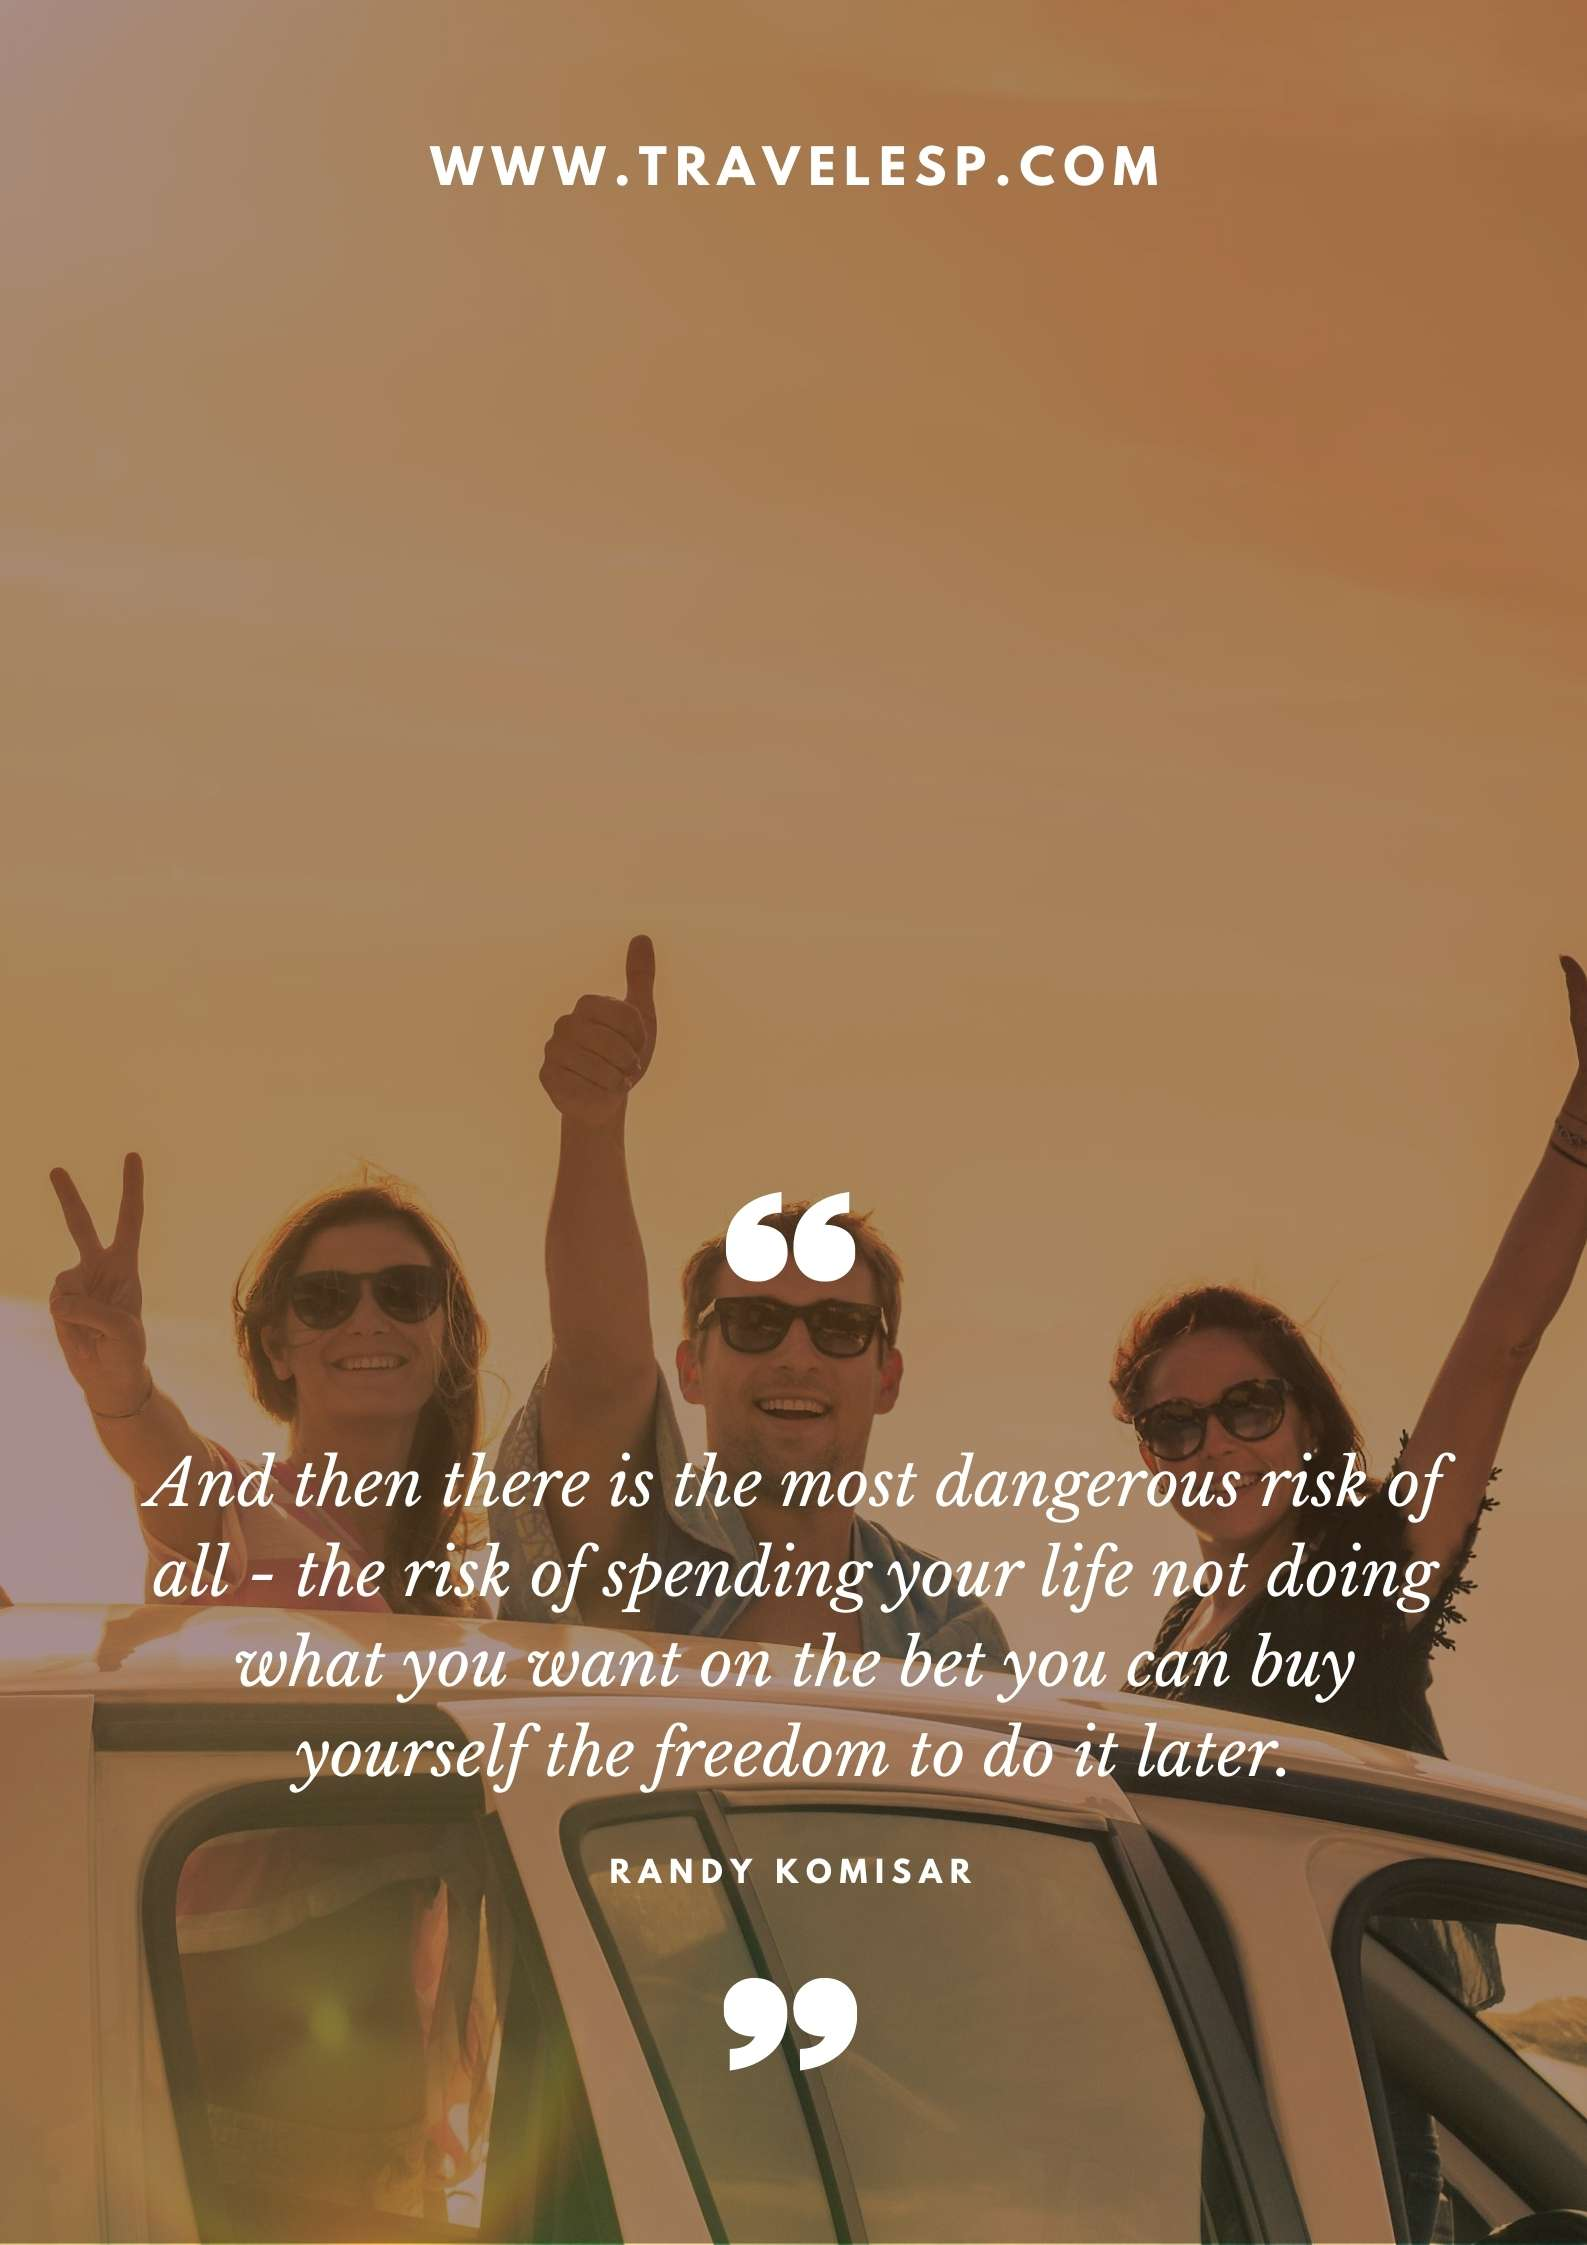 Travel Quotes for Instagram